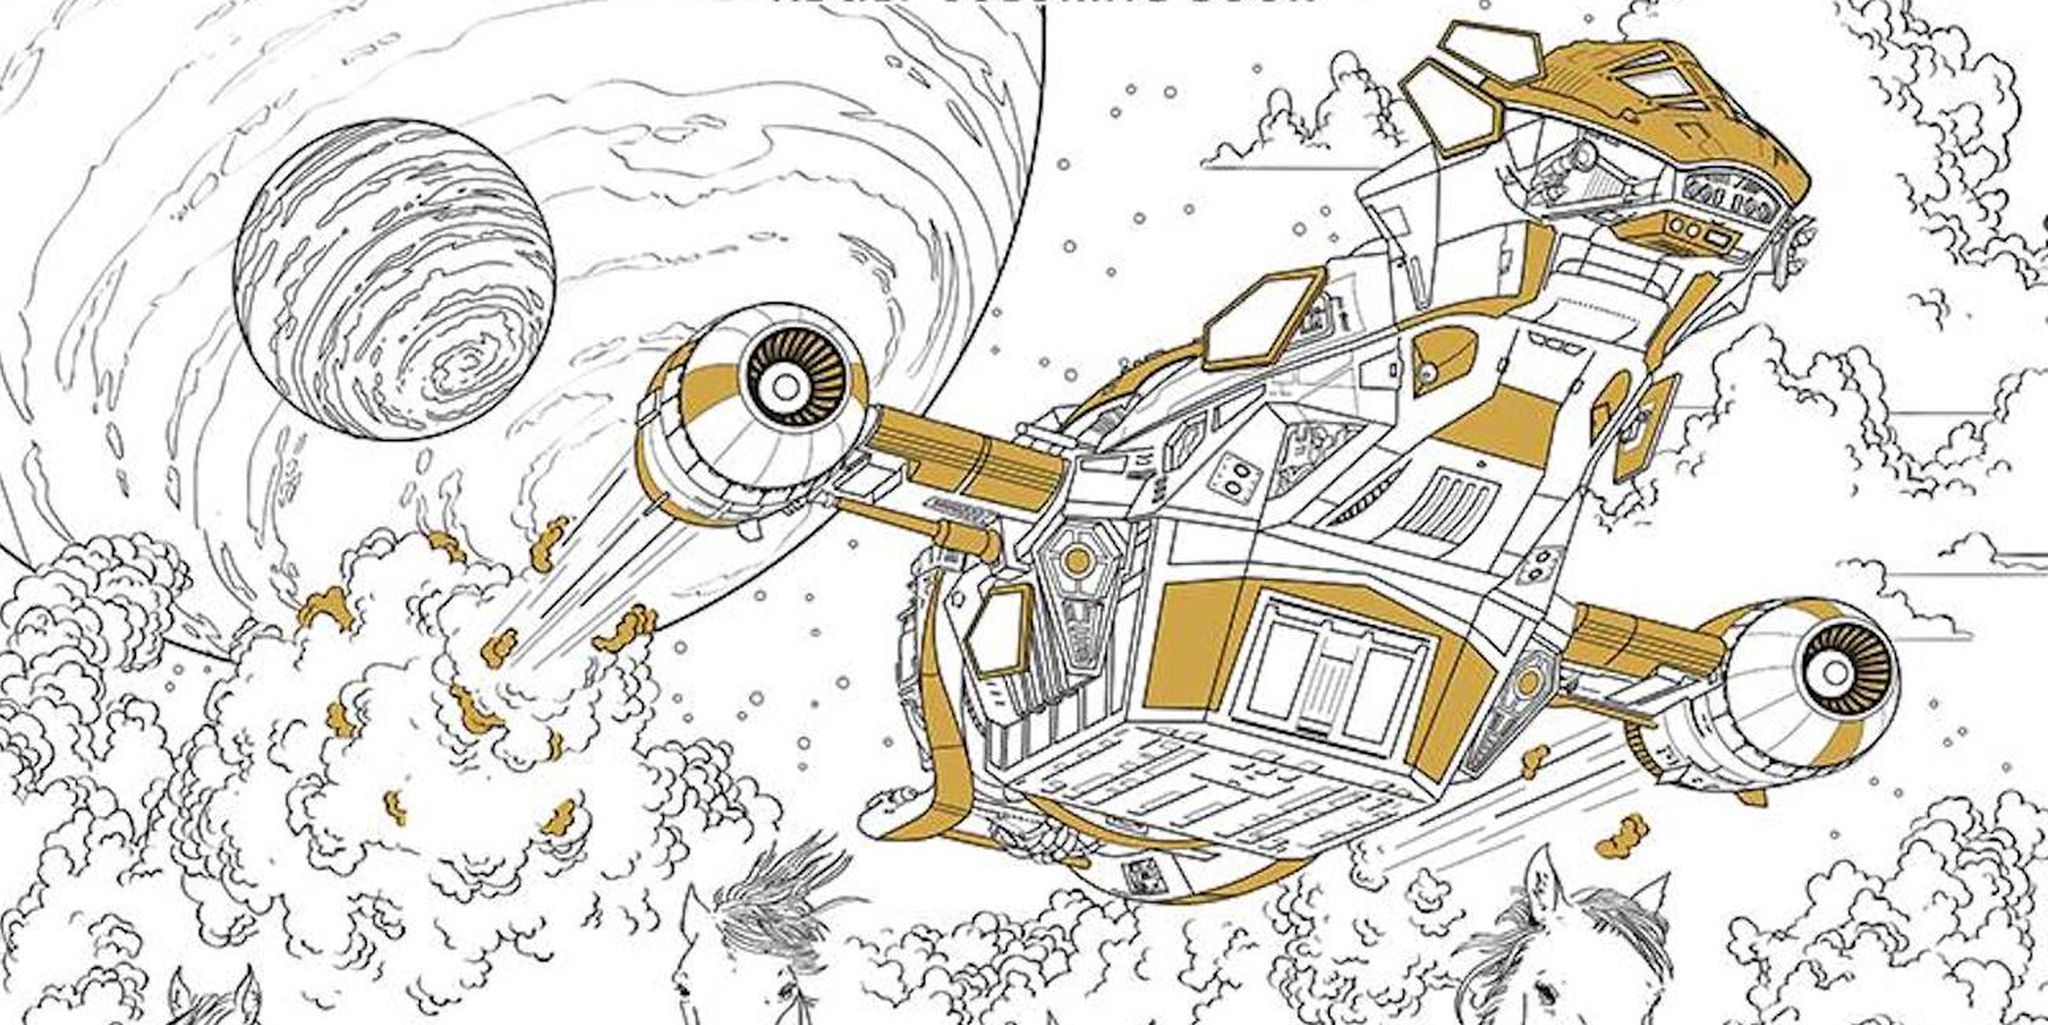 Serenity coloring book